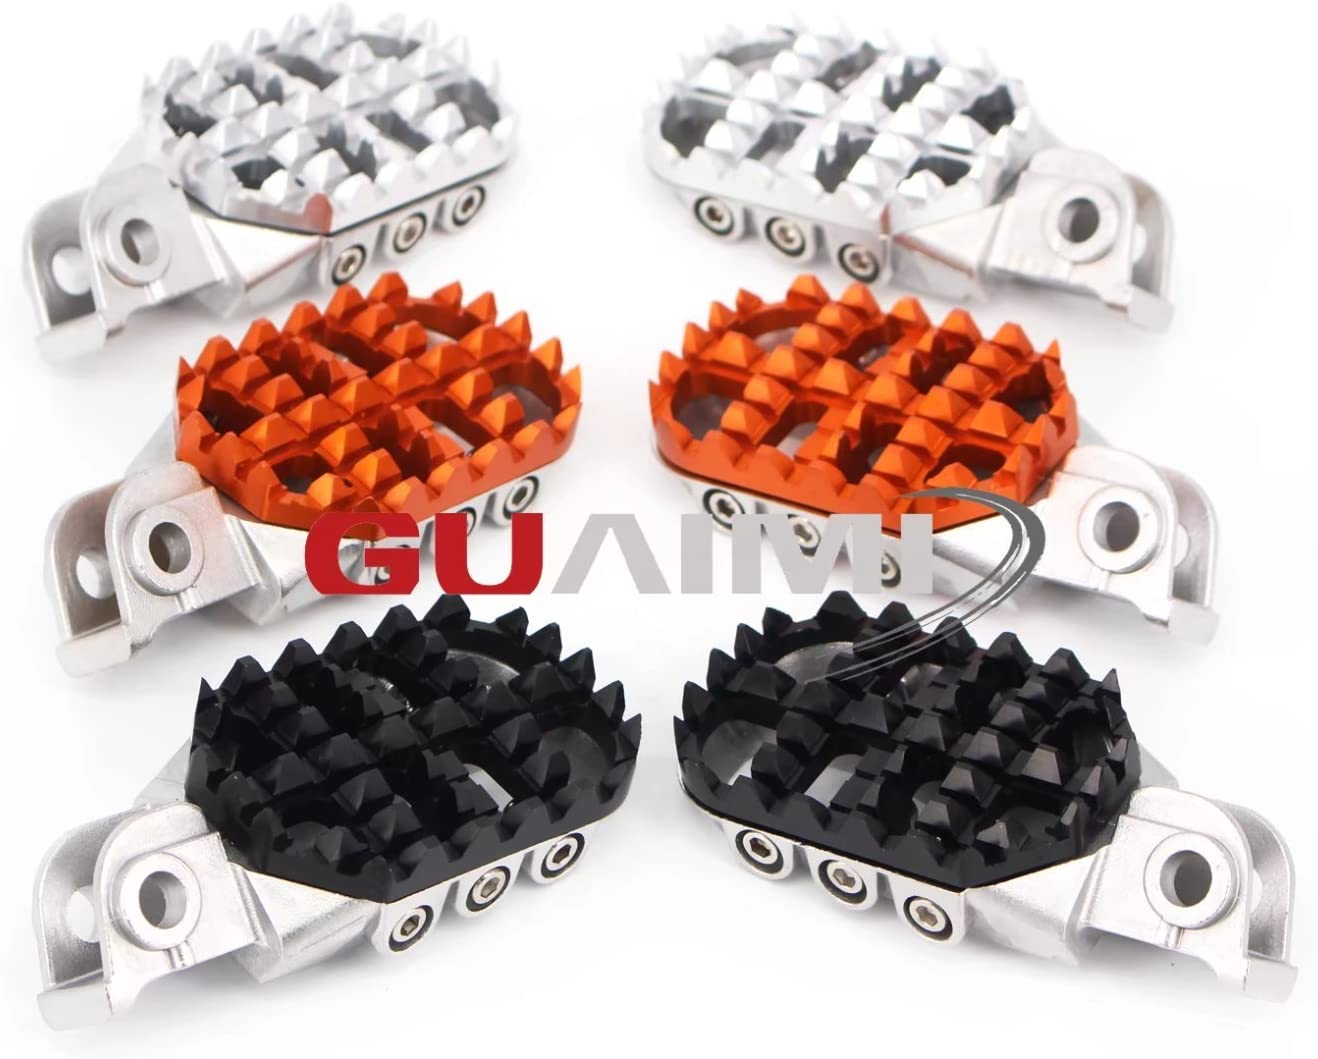 Motorcycle Joint Footrests Adjustable Foot Rests Pedal For Ktm Exc Xc Sx Sx F 50 125 250 350 450 525 530 660 950 990 Orange Auto